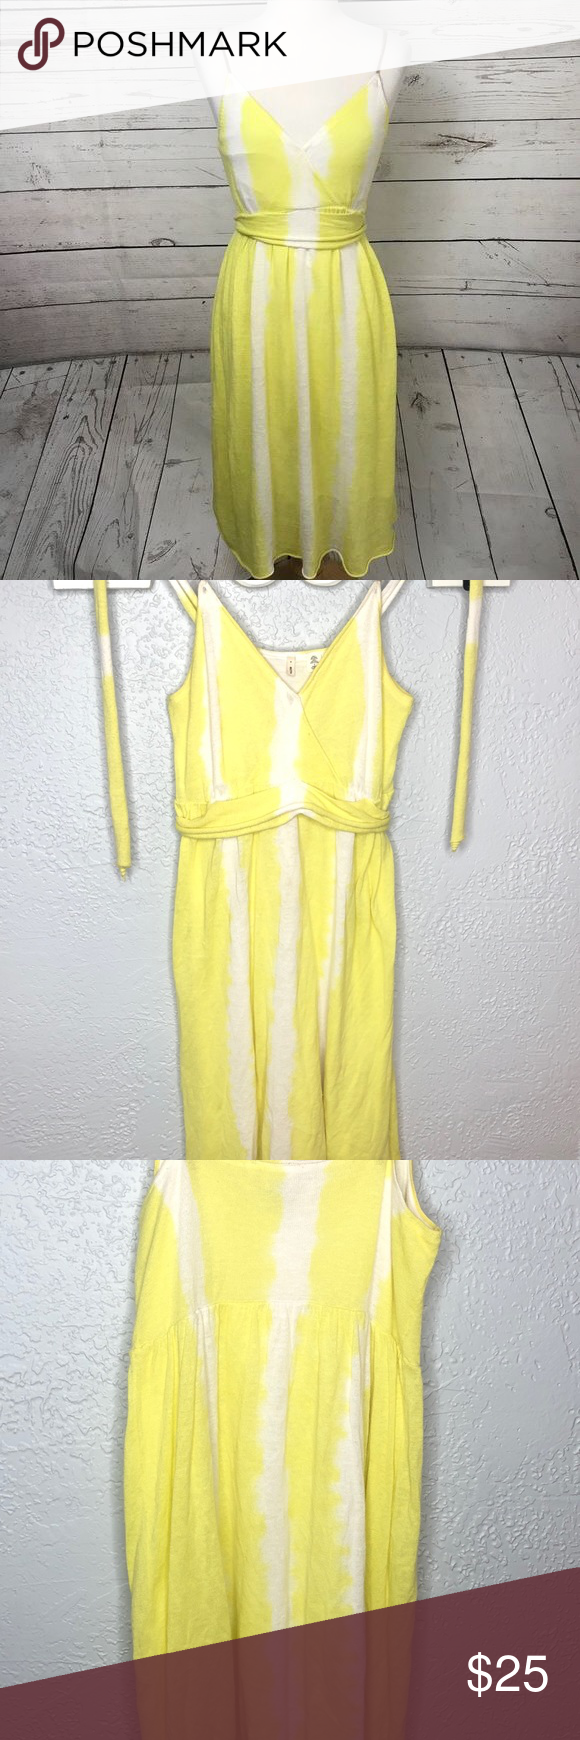 Anthro Moth Yellow And White Beach Ball Dress Yellow And White Beach Ball Dress Is So Fun You Can Tie This In The Back Beach White Dress Ball Dresses Dresses [ 1740 x 580 Pixel ]